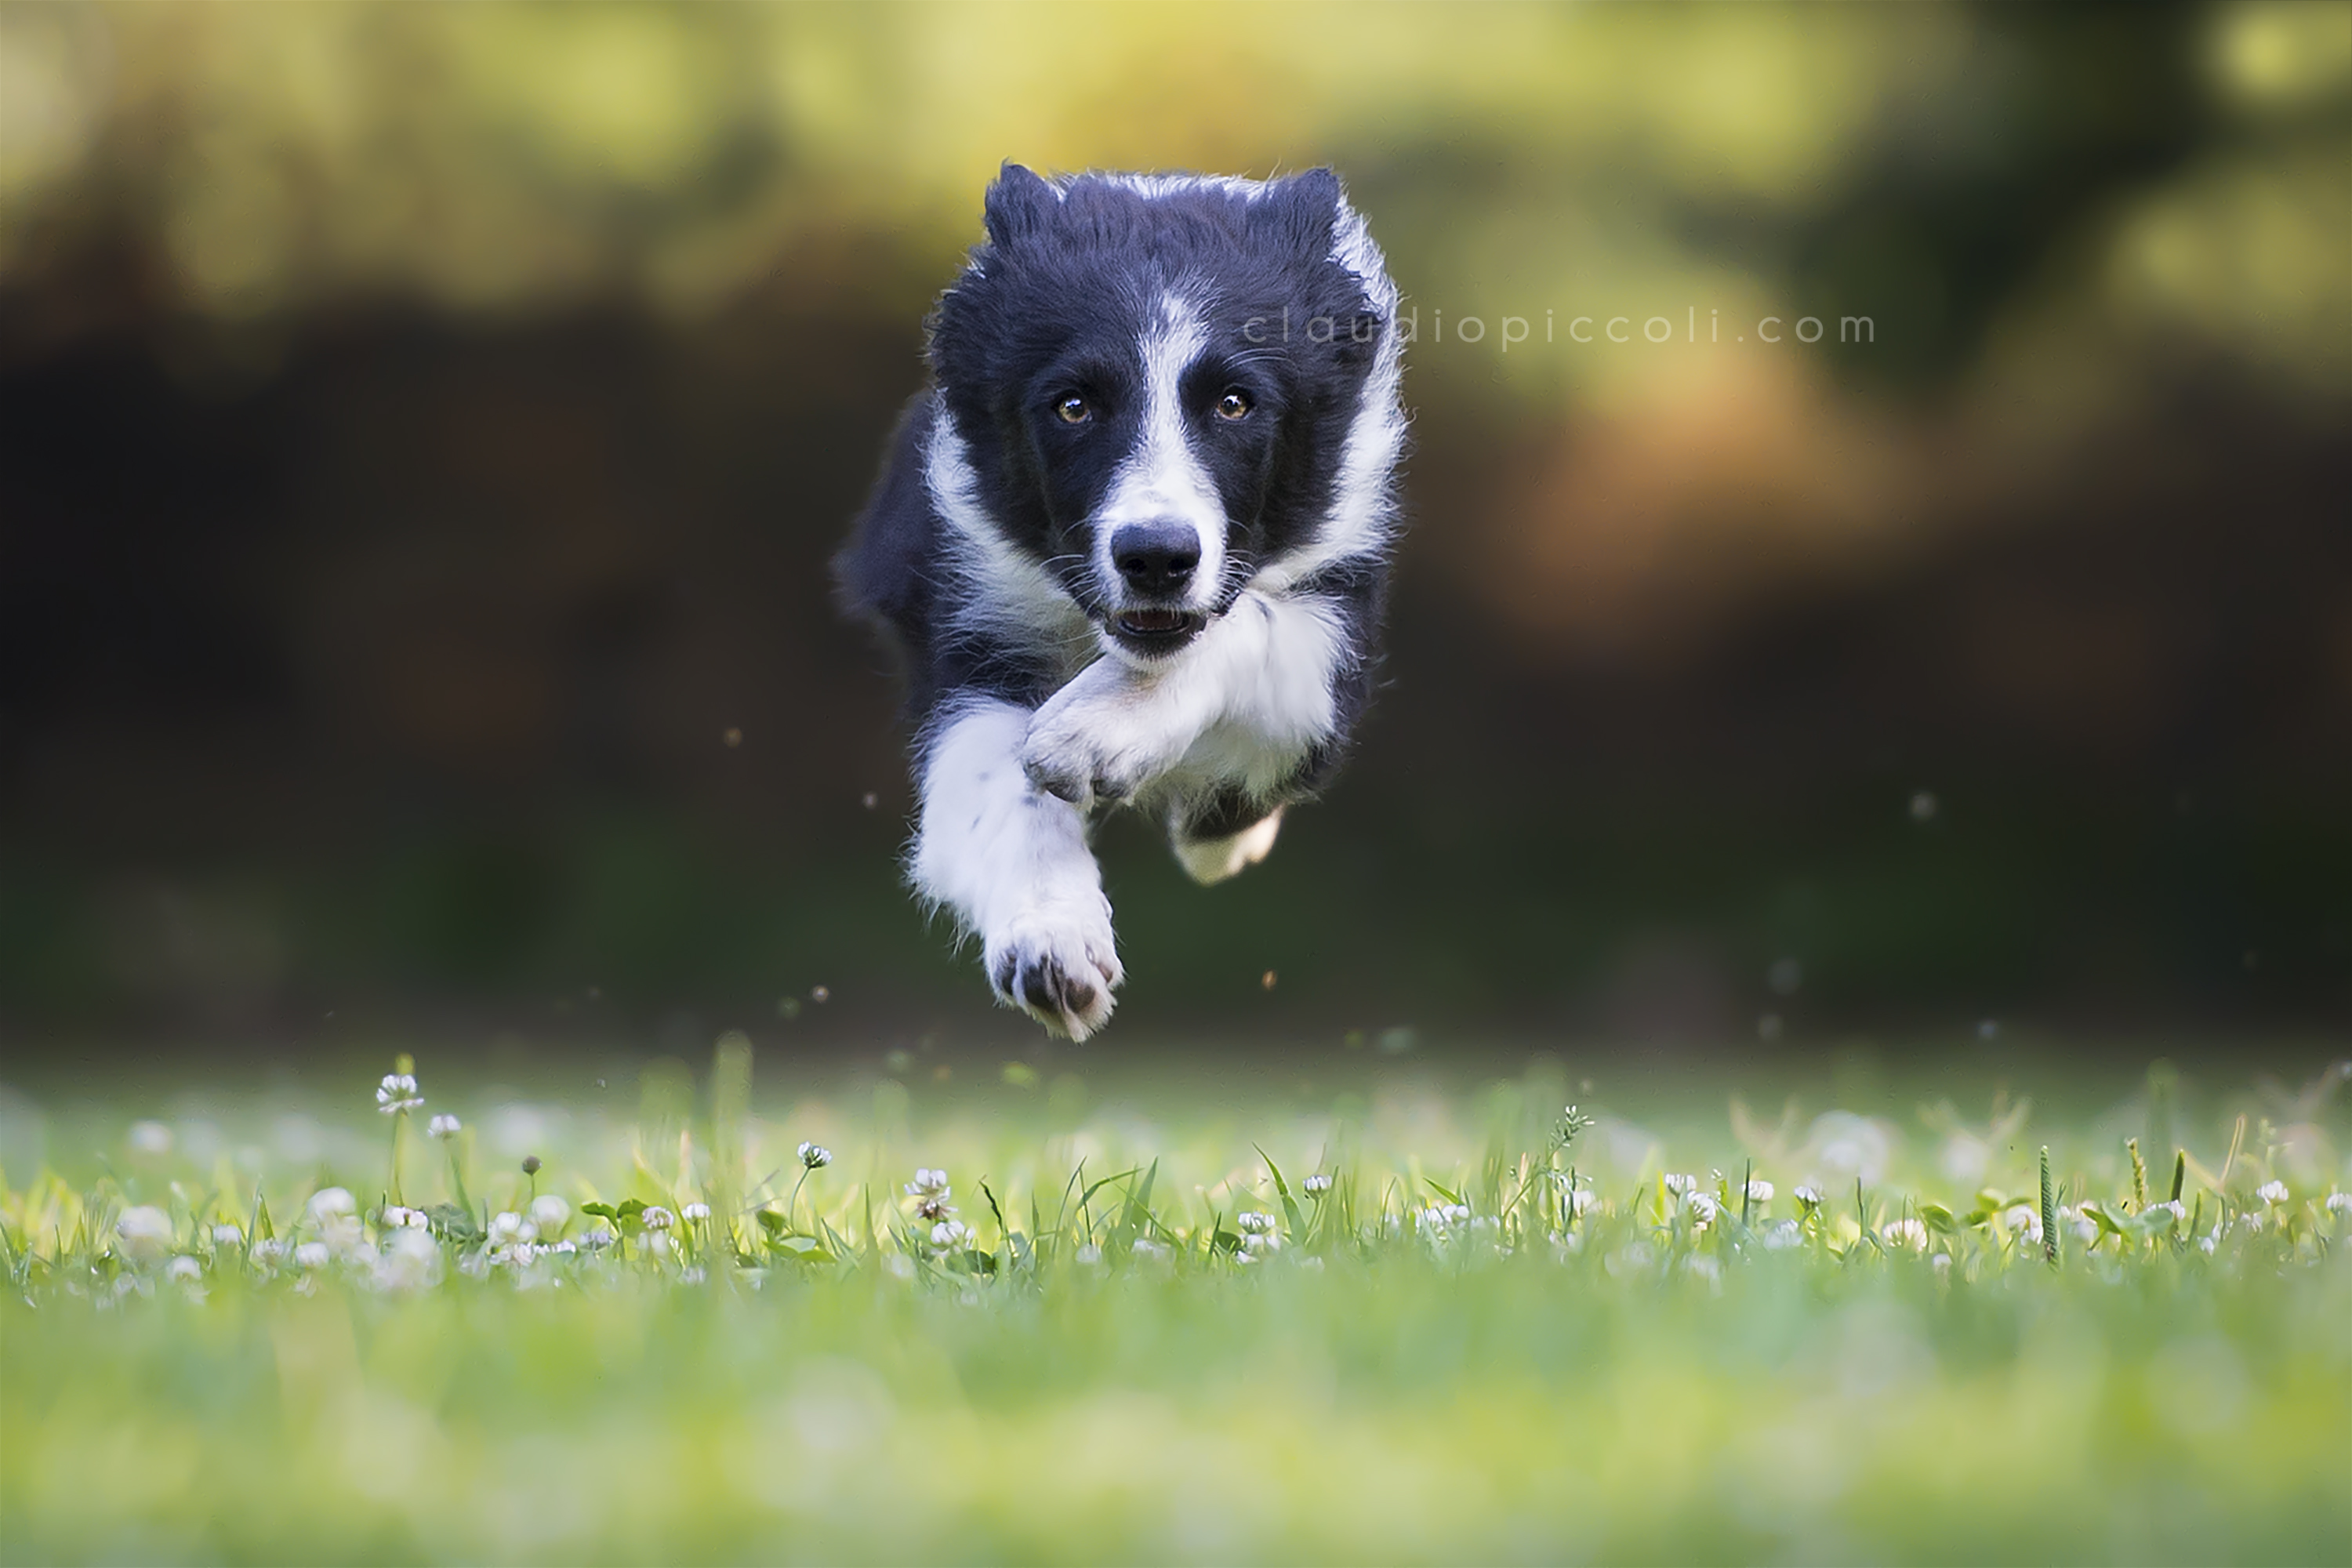 An intense puppy of Border Collie